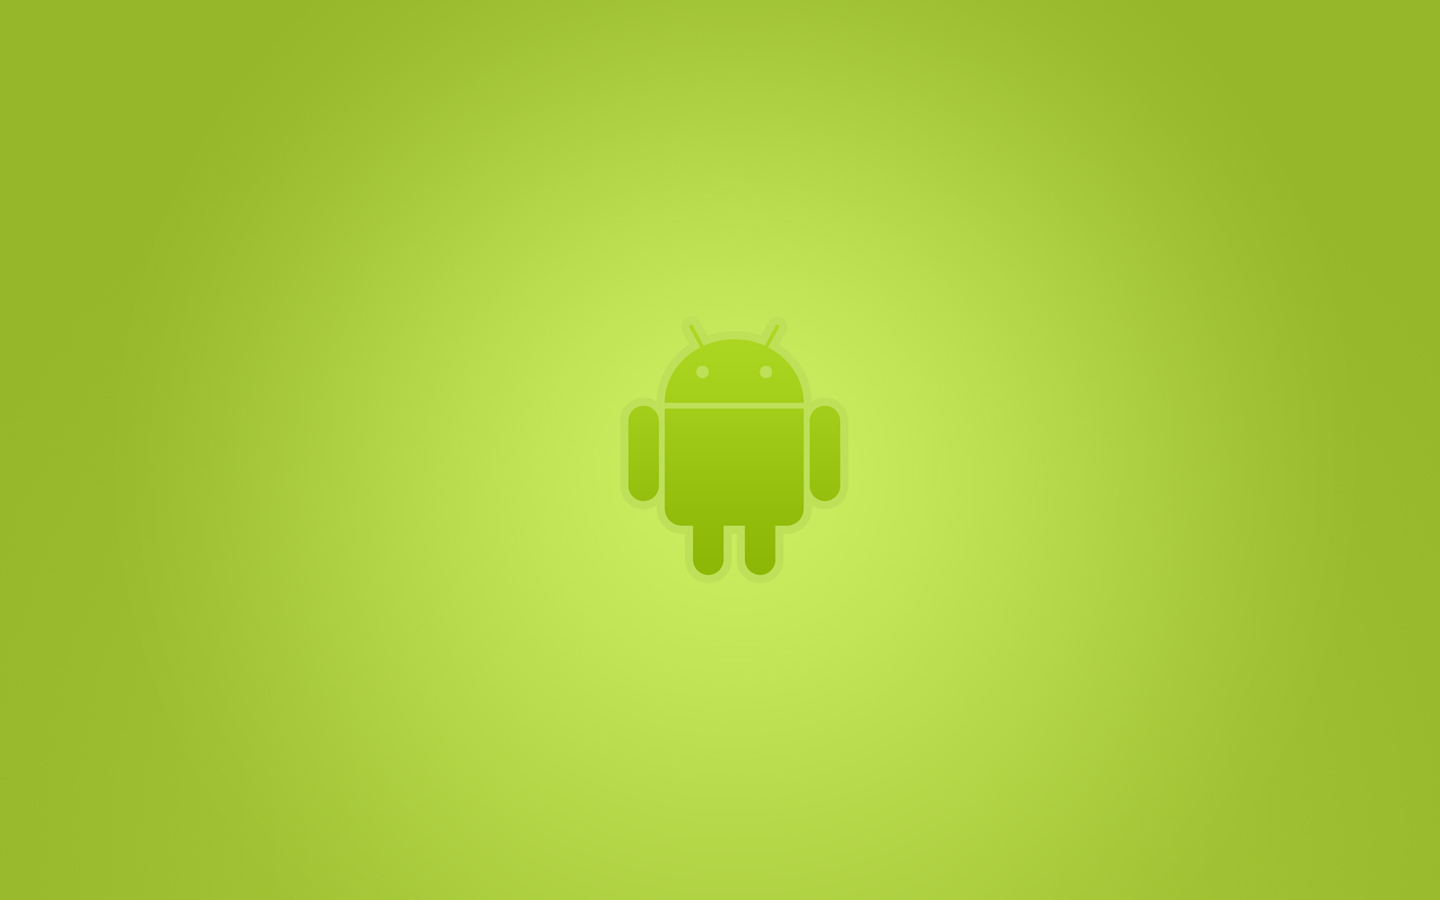 Android Tablet Wallpaper HD Wallpaper 3D Abstract Wallpapers 1440x900